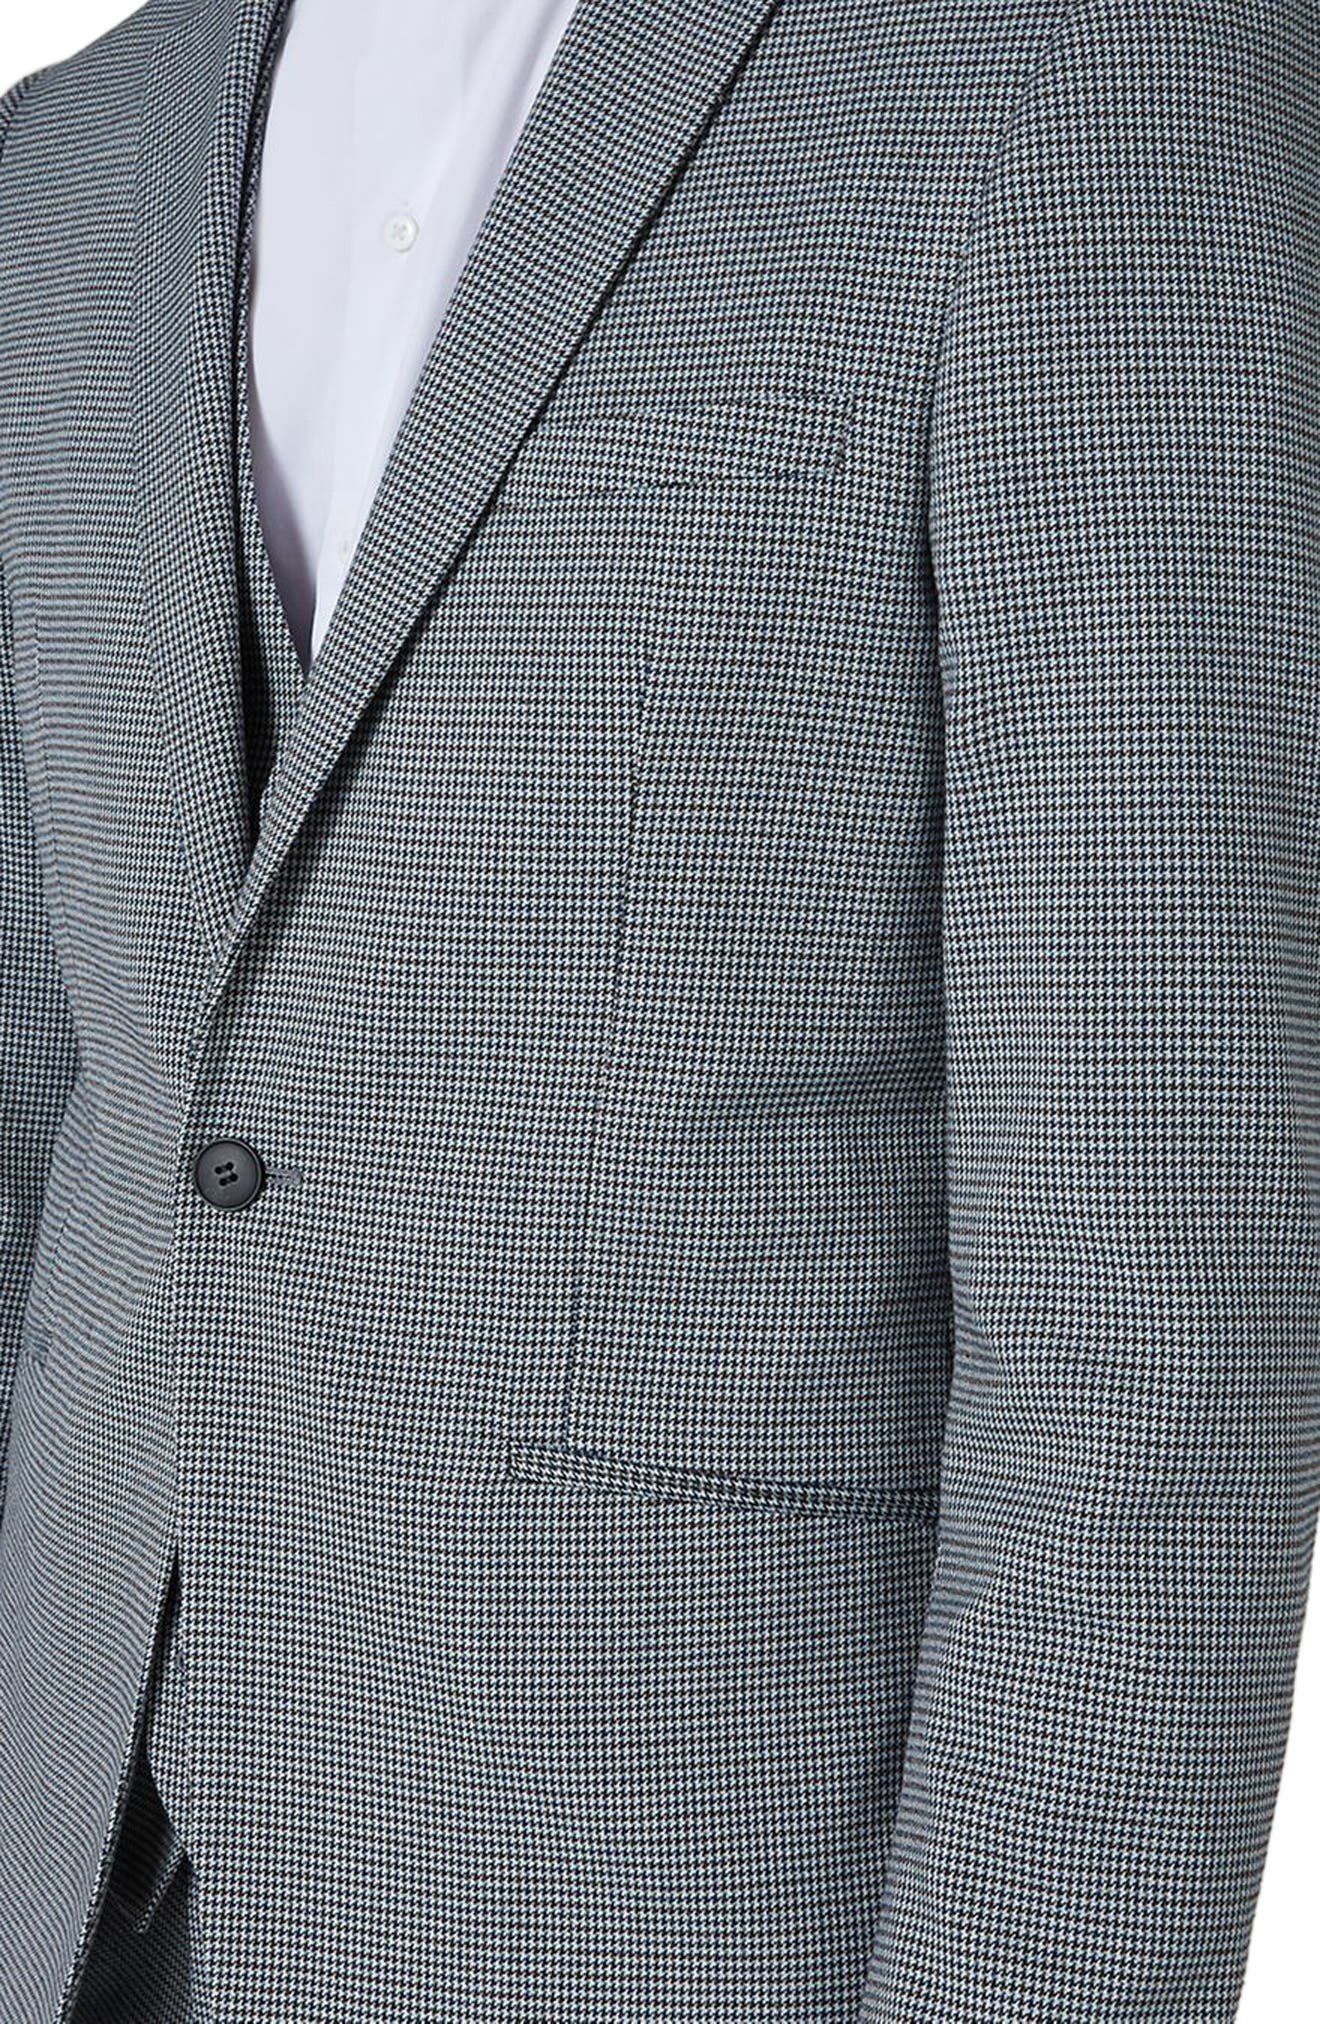 Alternate Image 4  - Topman Skinny Fit Houndstooth Suit Jacket